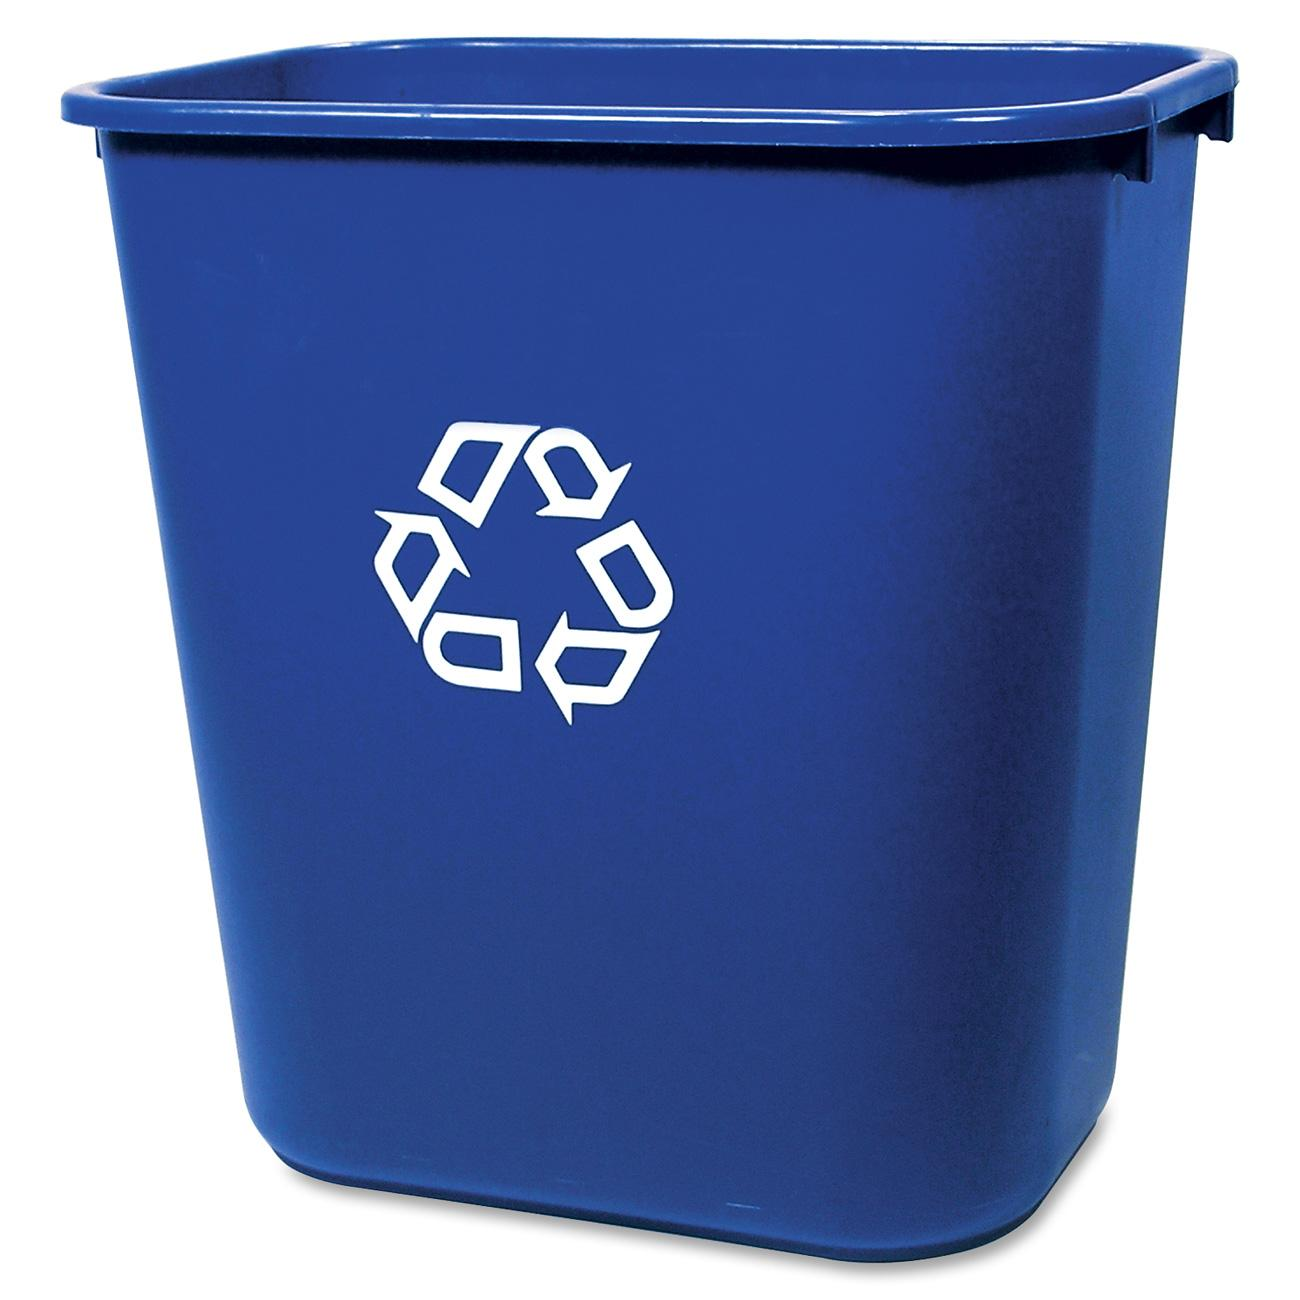 Rubbermaid Commercial, RCP295673BE, Deskside Recycling Container, 1, Blue